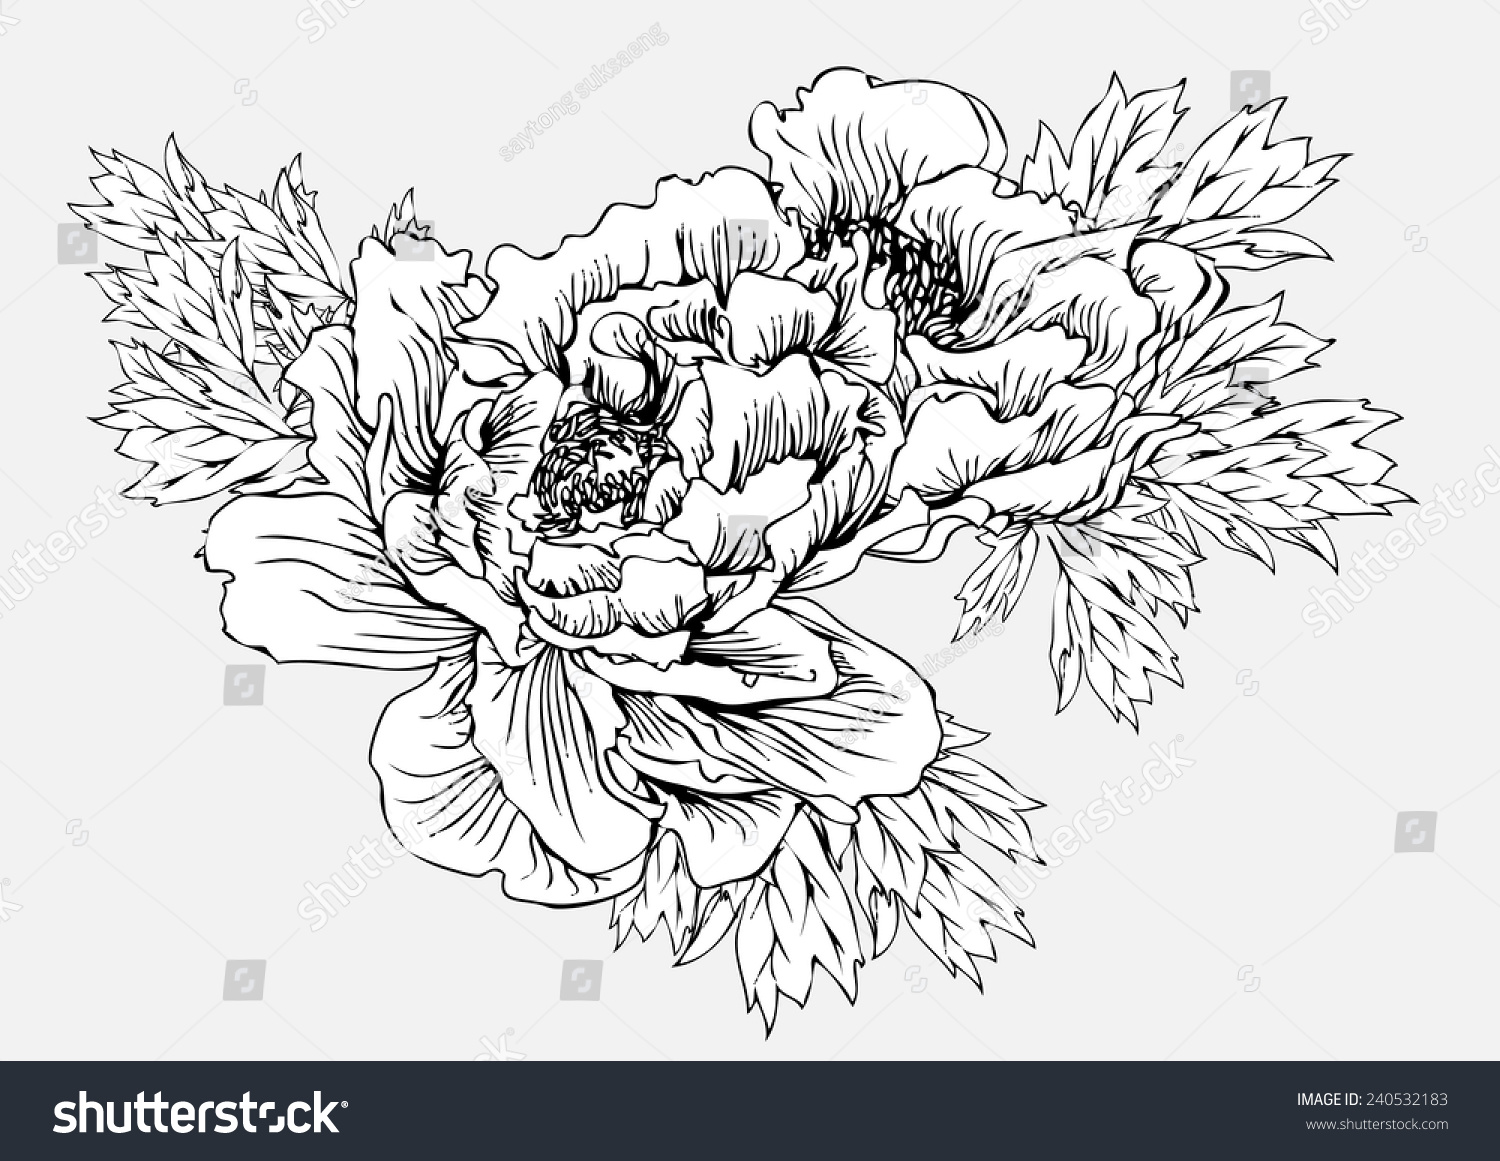 Peony flower isolated on white stock vector 368014568 shutterstock - Flowers Black And White Line Drawing Vector Background Vintage Floral Vector Bouquet Of Peonies And Garden Flowers Botanical Natural Peonies Illustration